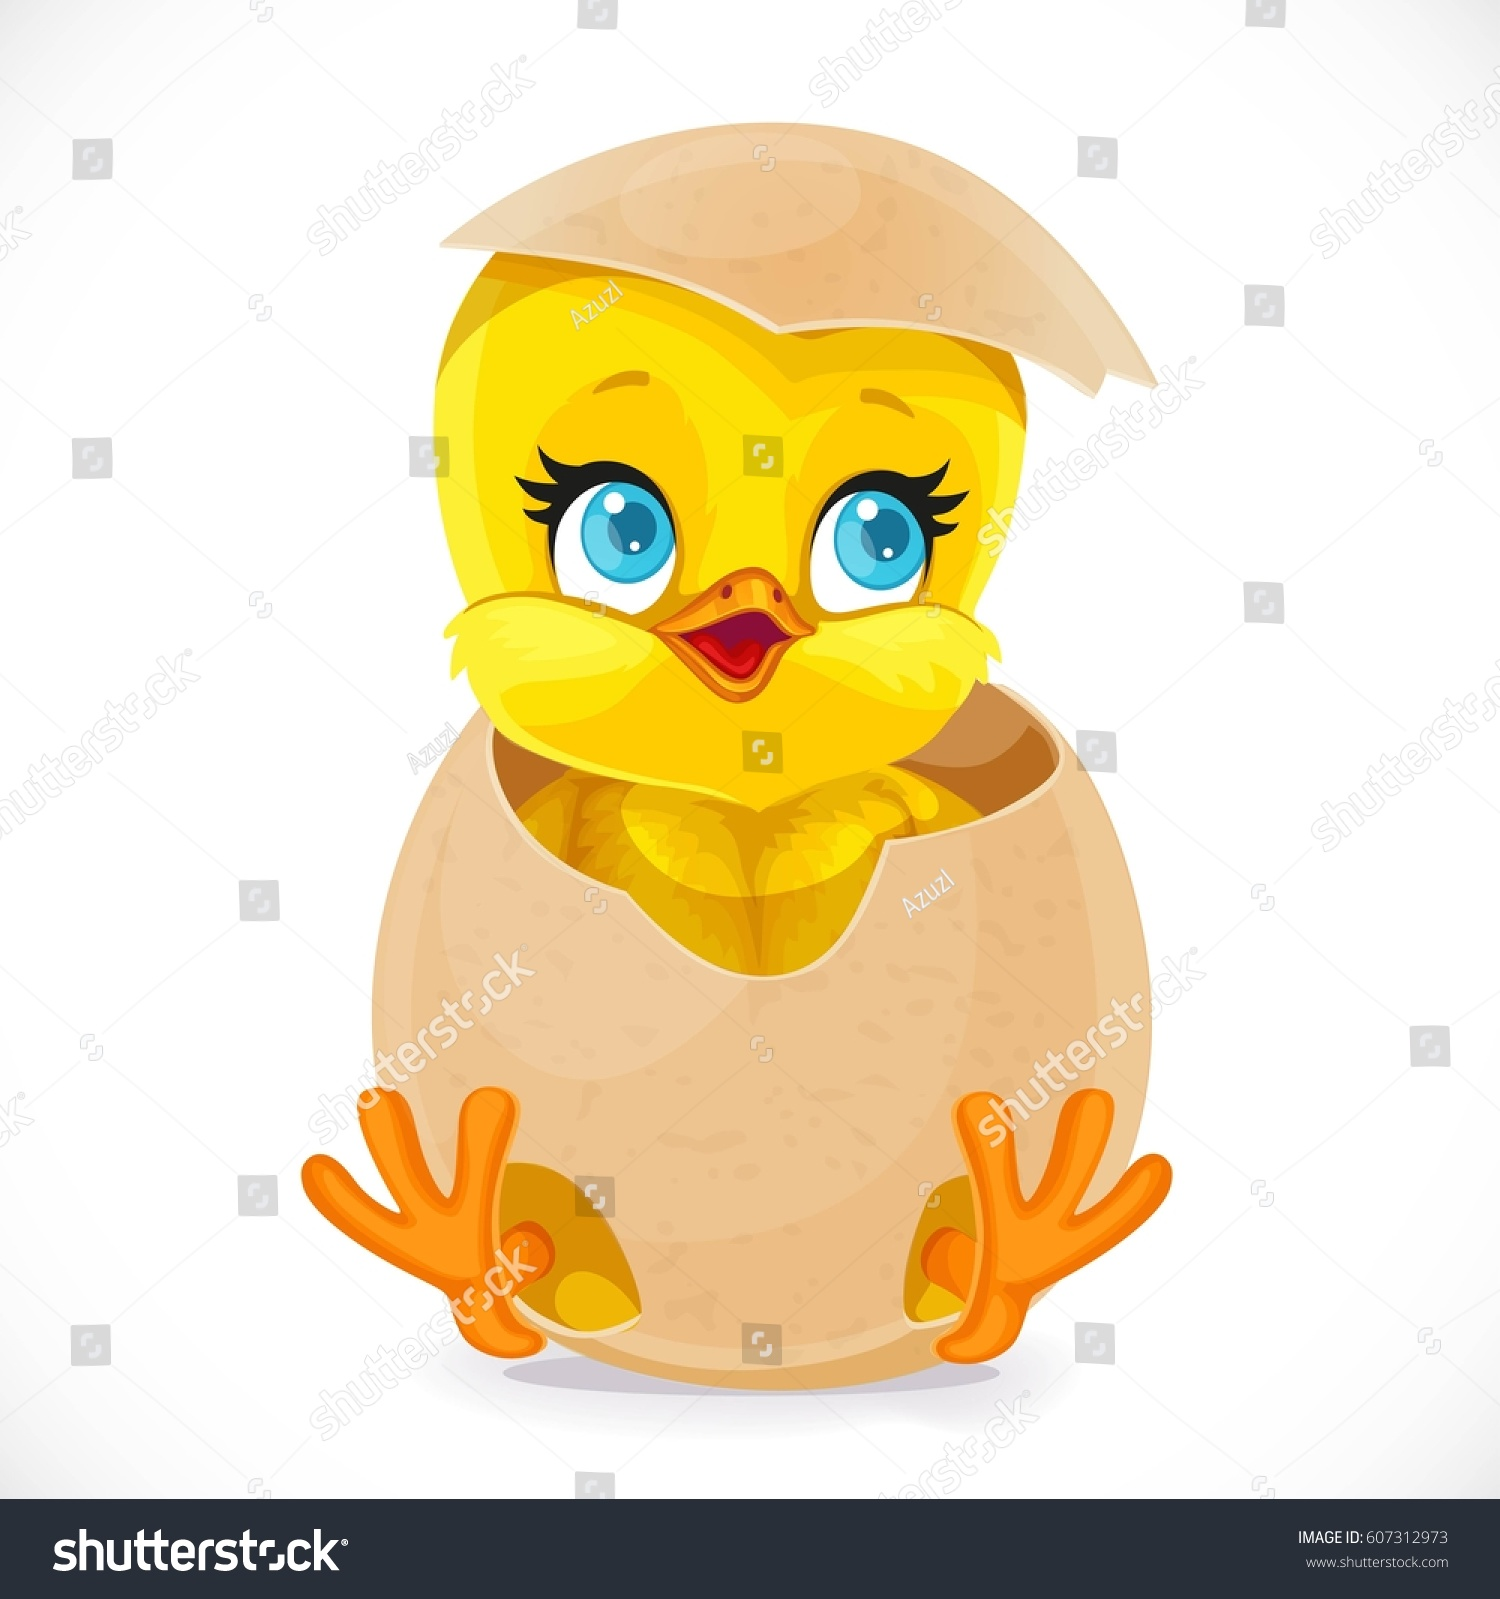 Egg Cartoon Part - 46: Cute Little Cartoon Chick Hatched From An Egg Isolated On A White Background